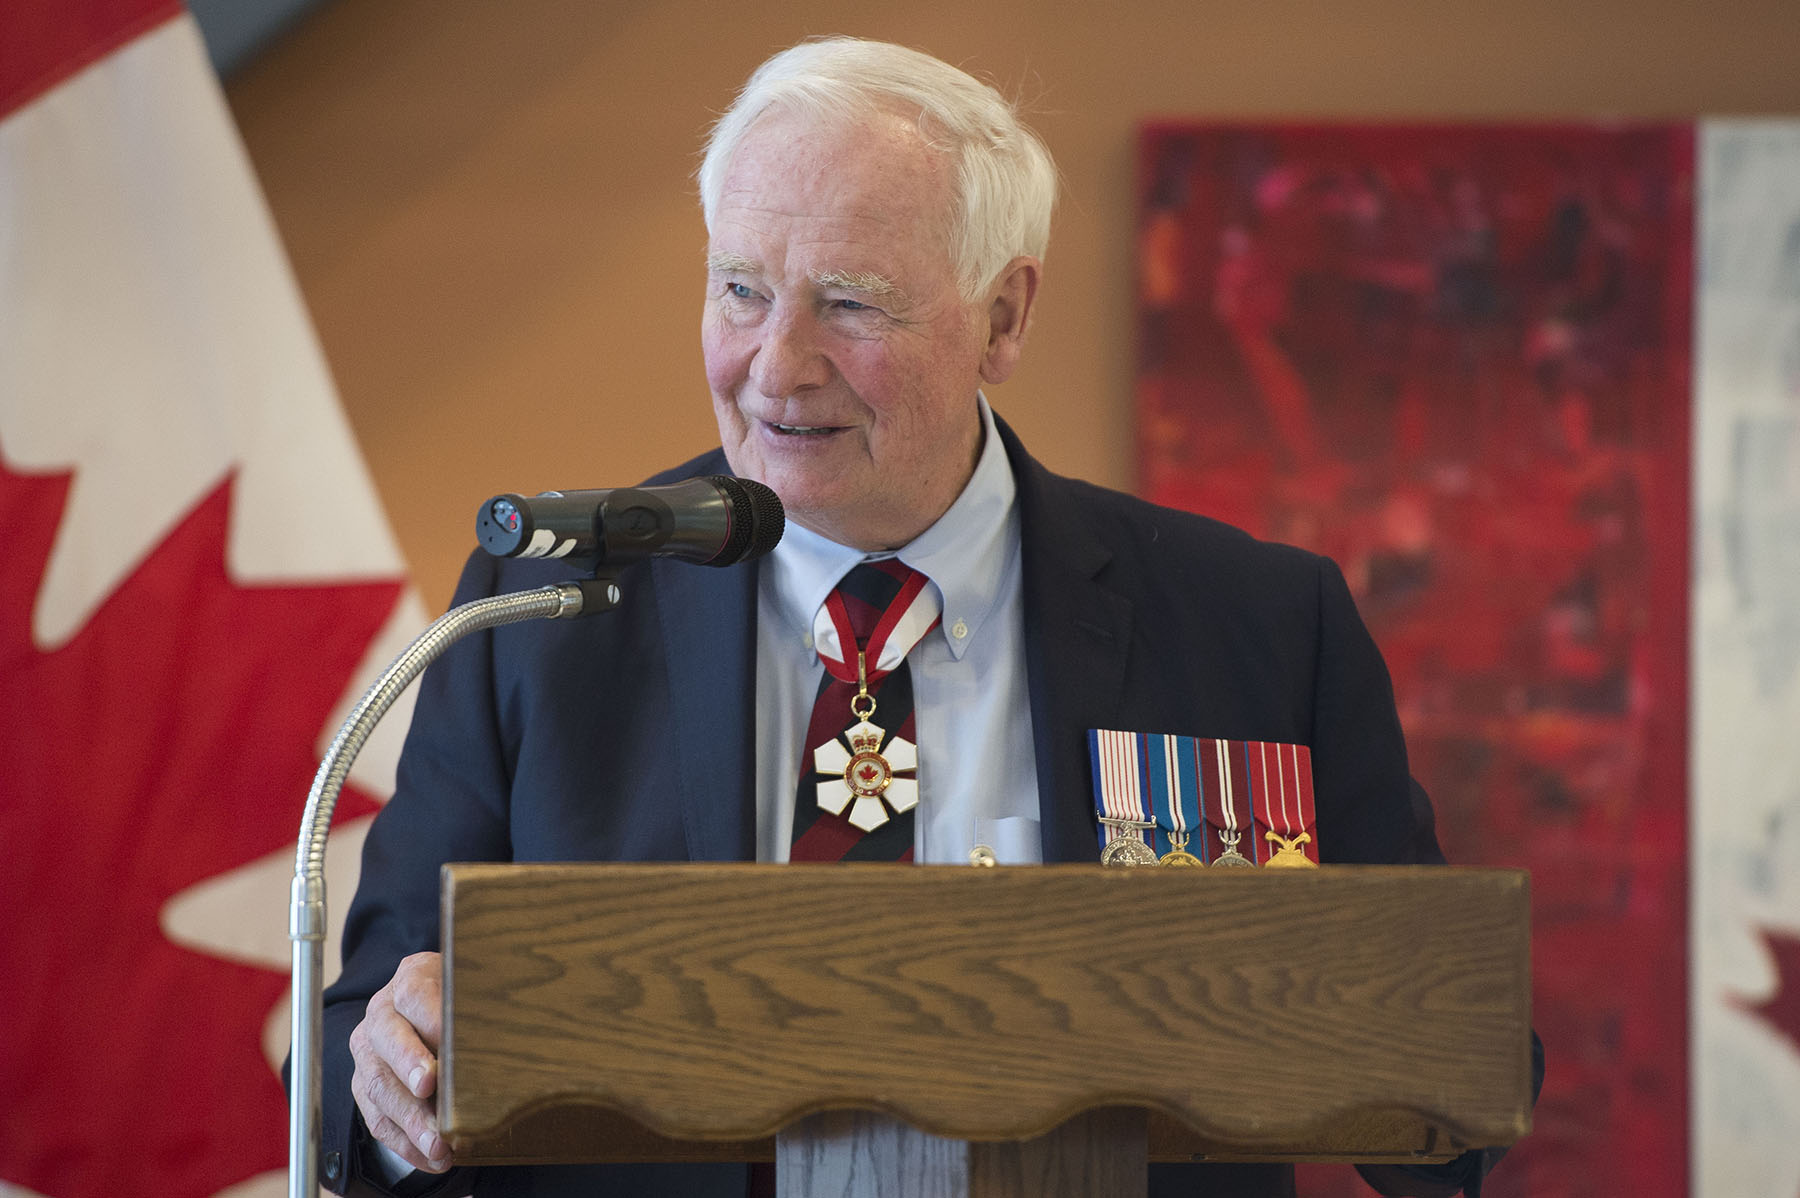 During the Perley and Rideau Veterans' Health Centre Foundation's Annual Donor Reception, the Governor General delivered remarks to celebrate the generosity of the Centre's volunteers, caregivers and donors.